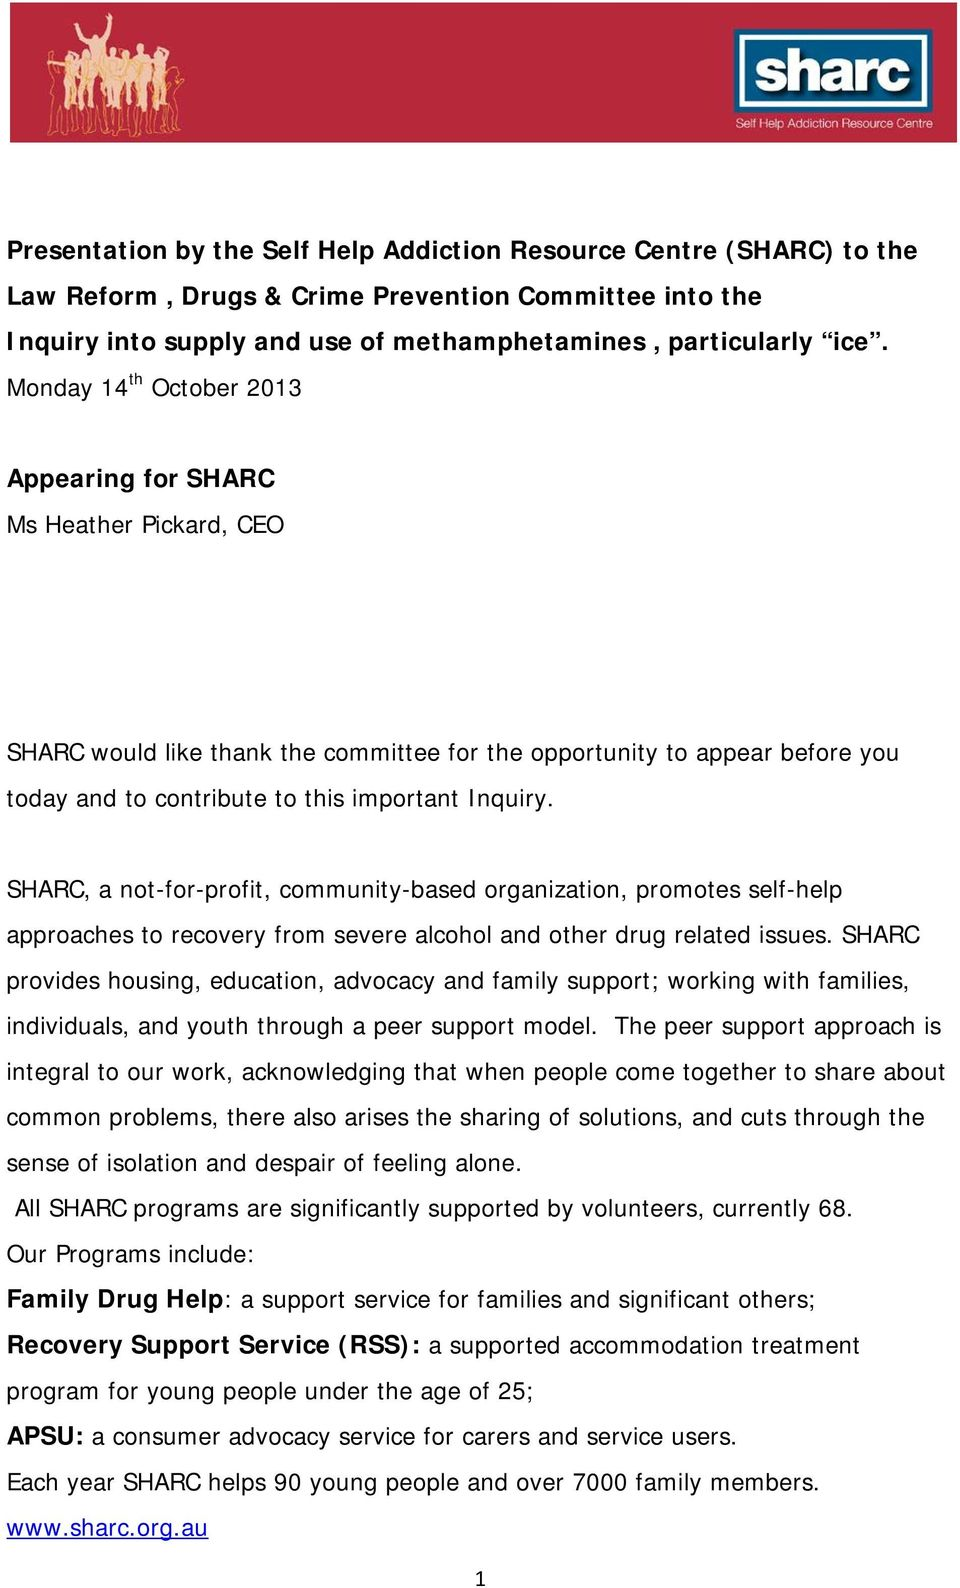 SHARC, a not-for-profit, community-based organization, promotes self-help approaches to recovery from severe alcohol and other drug related issues.